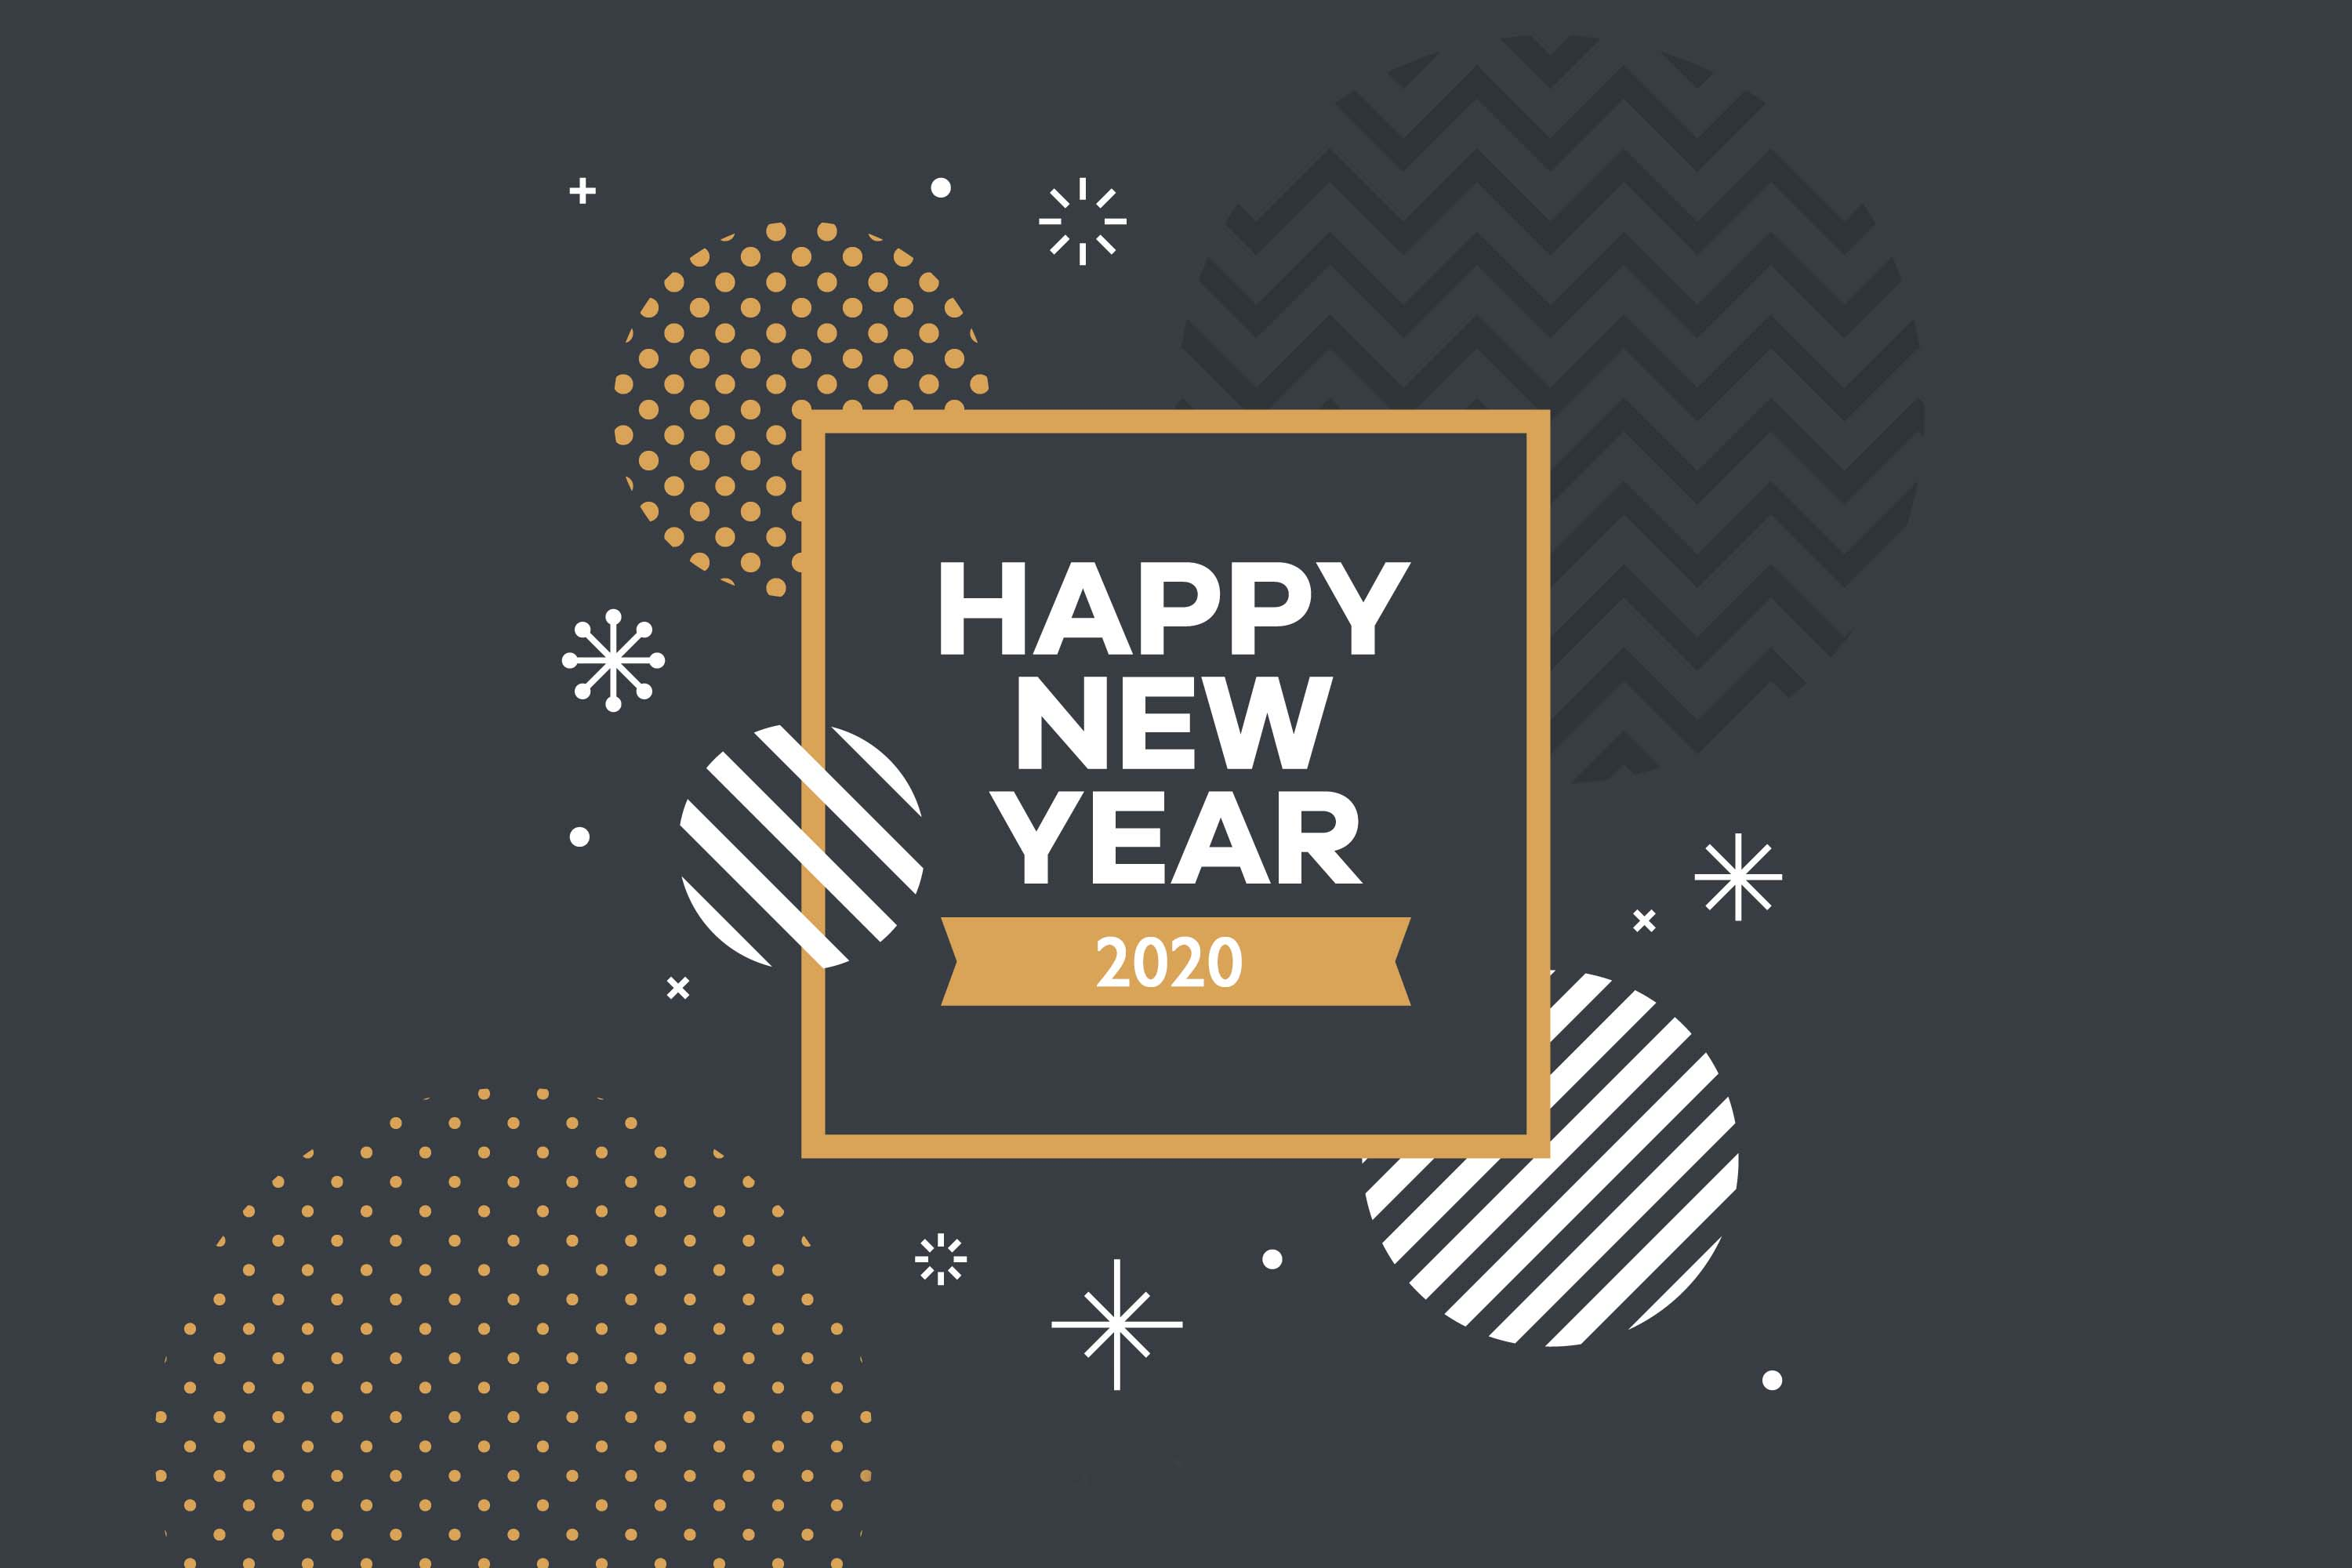 Professional Happy New Year 2020 Wallpaper